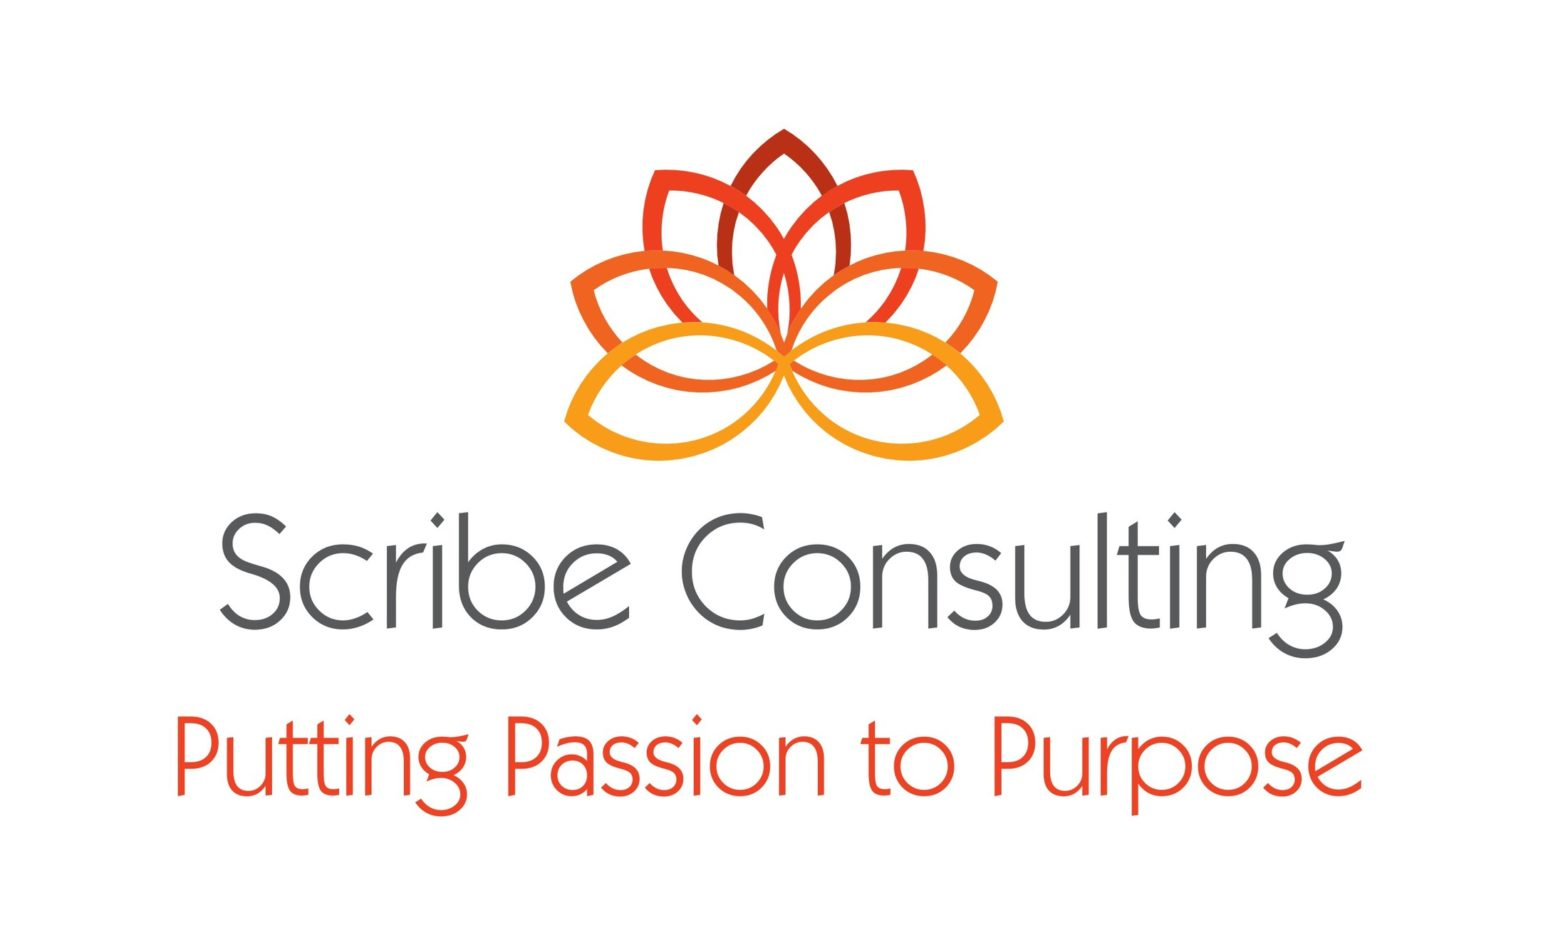 Scribe Consulting